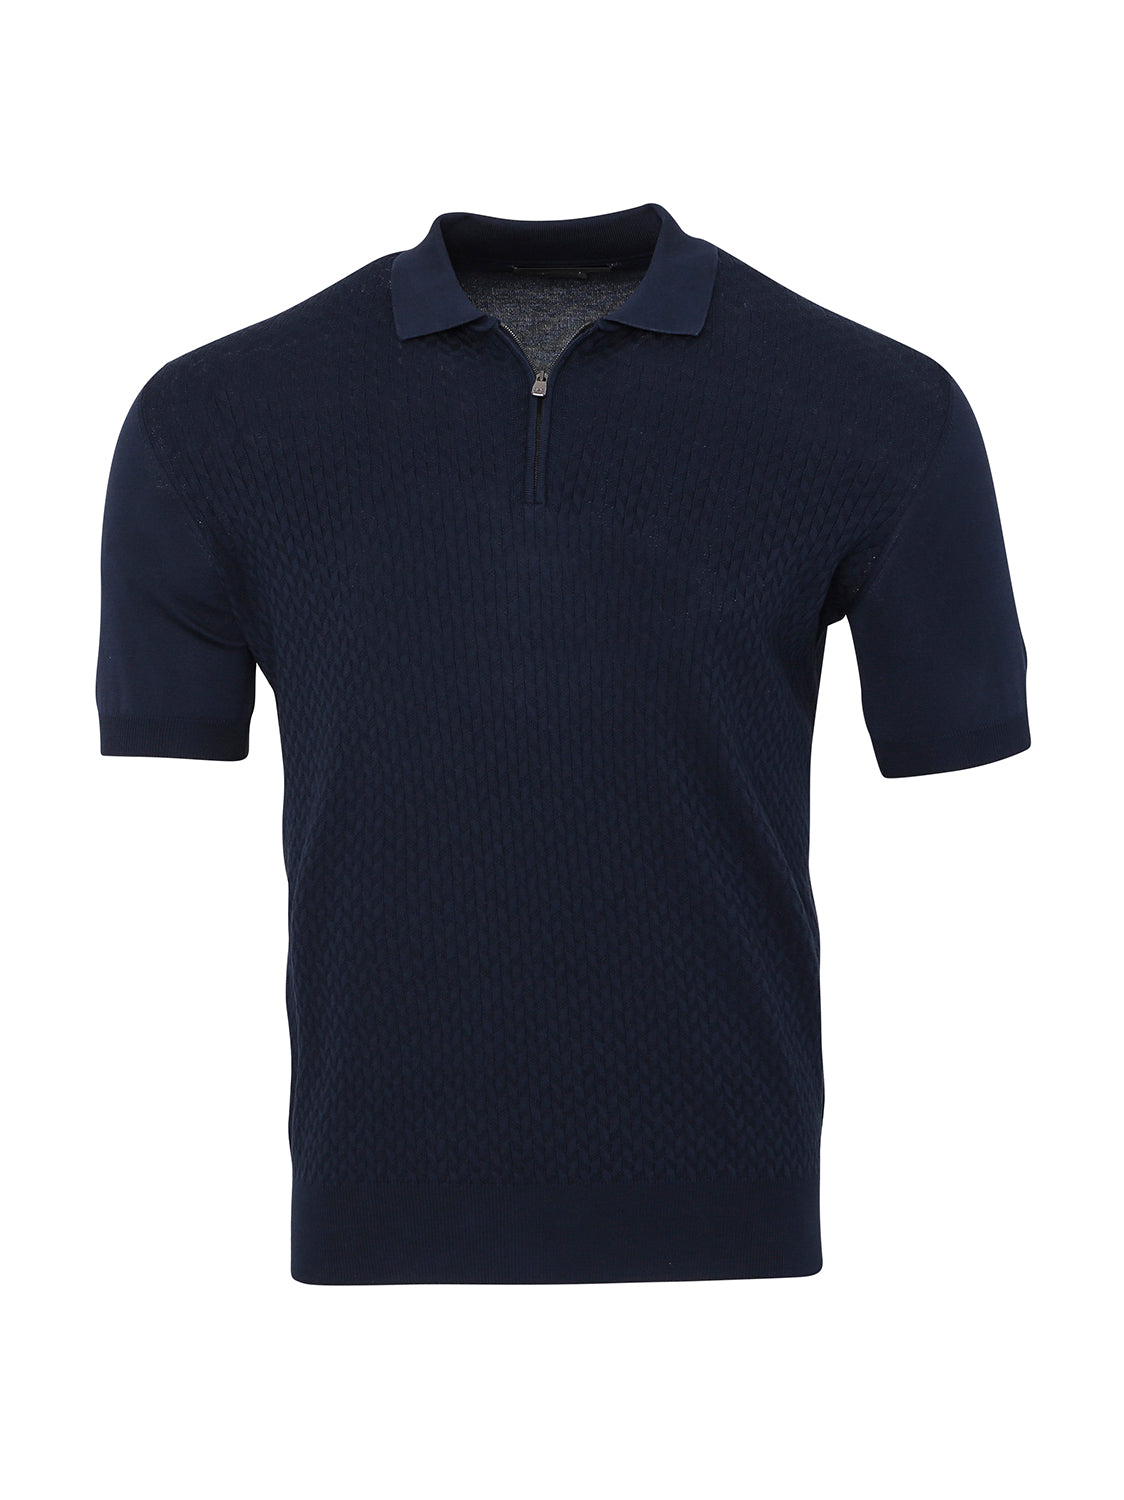 Corneliani Textured Zip Polo (Blue) - Union 22